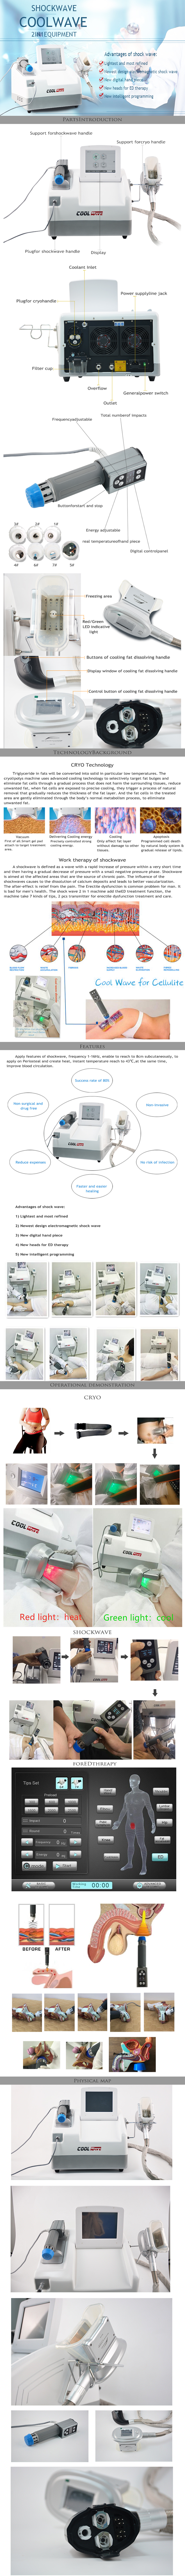 COOLWAVE Home Shockwave Therapy Cryolipolysis Machine product details